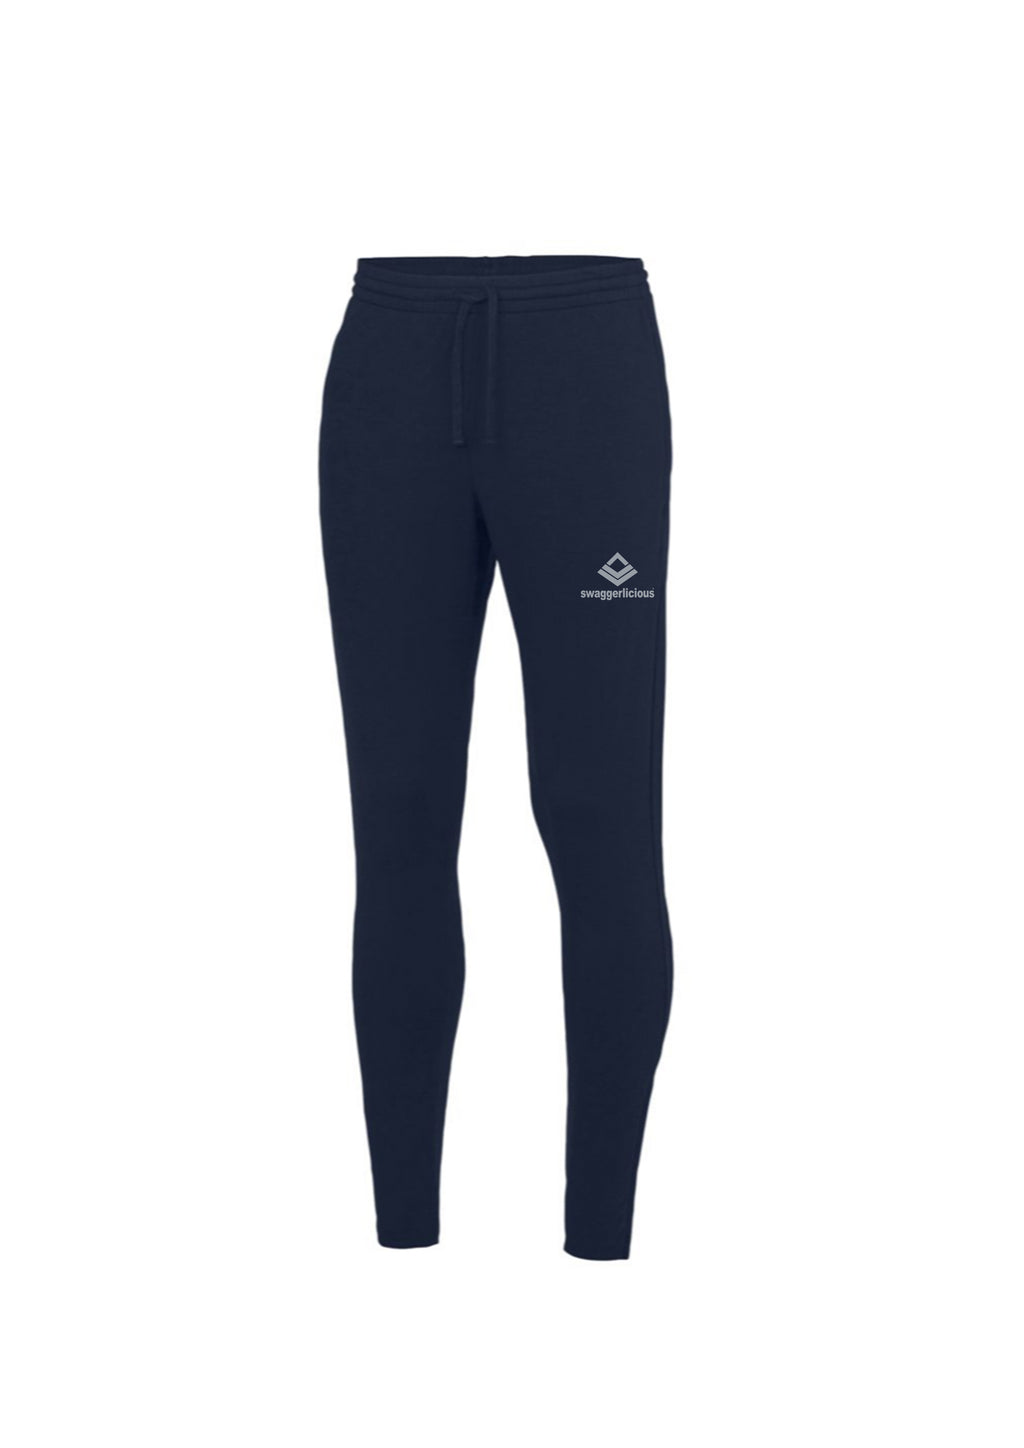 Swaggerlicious Cool French Navy Jogging Pants with Silver Logo